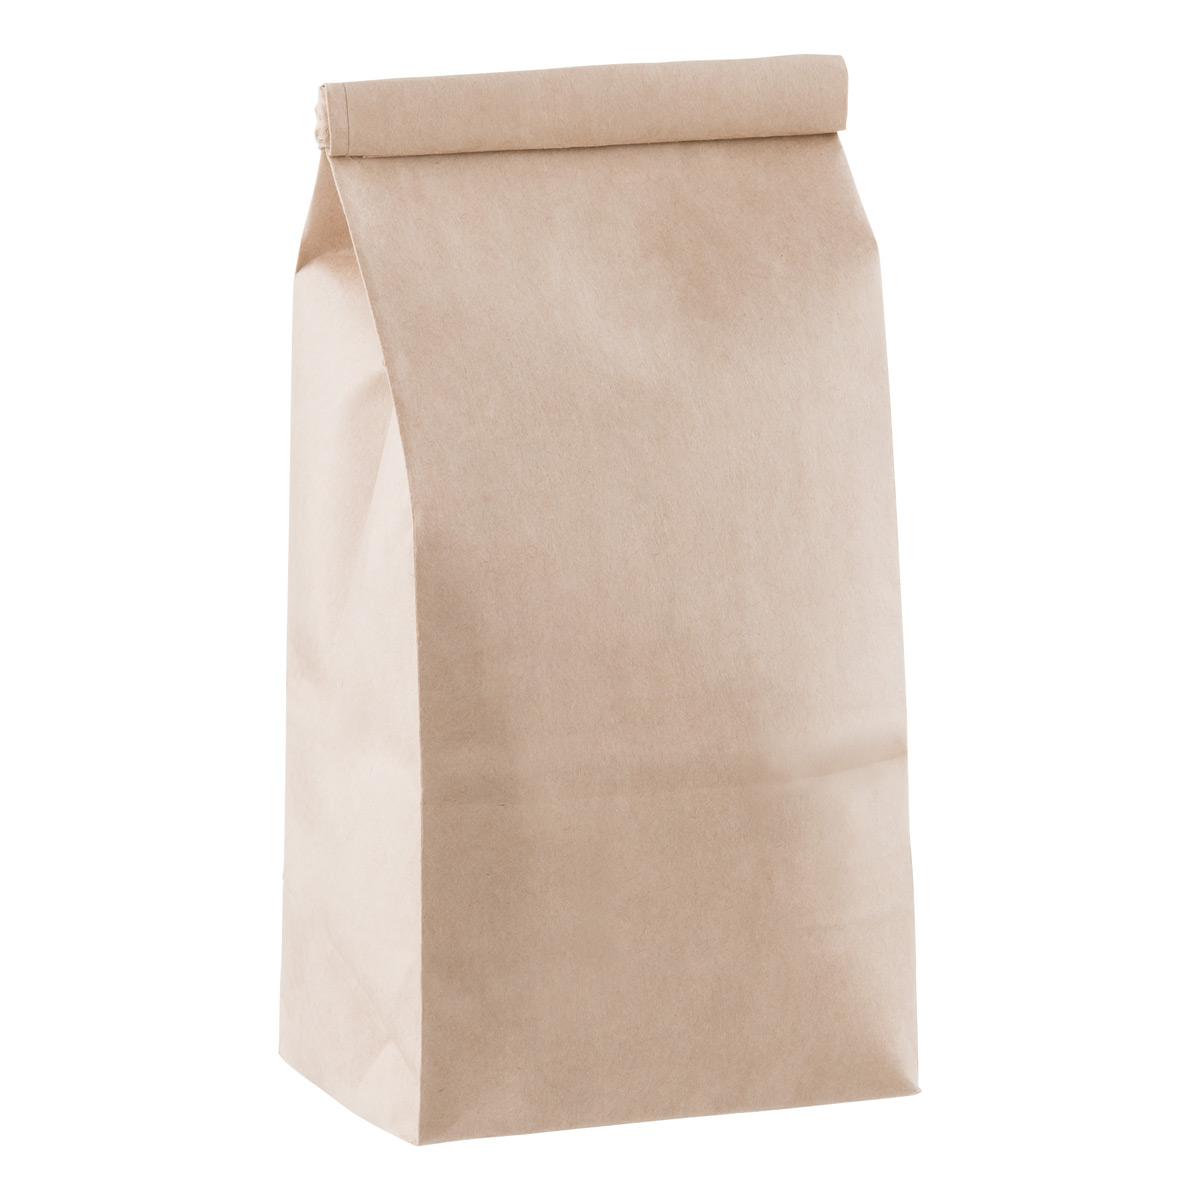 1/2 lb. Kraft Coffee Bag